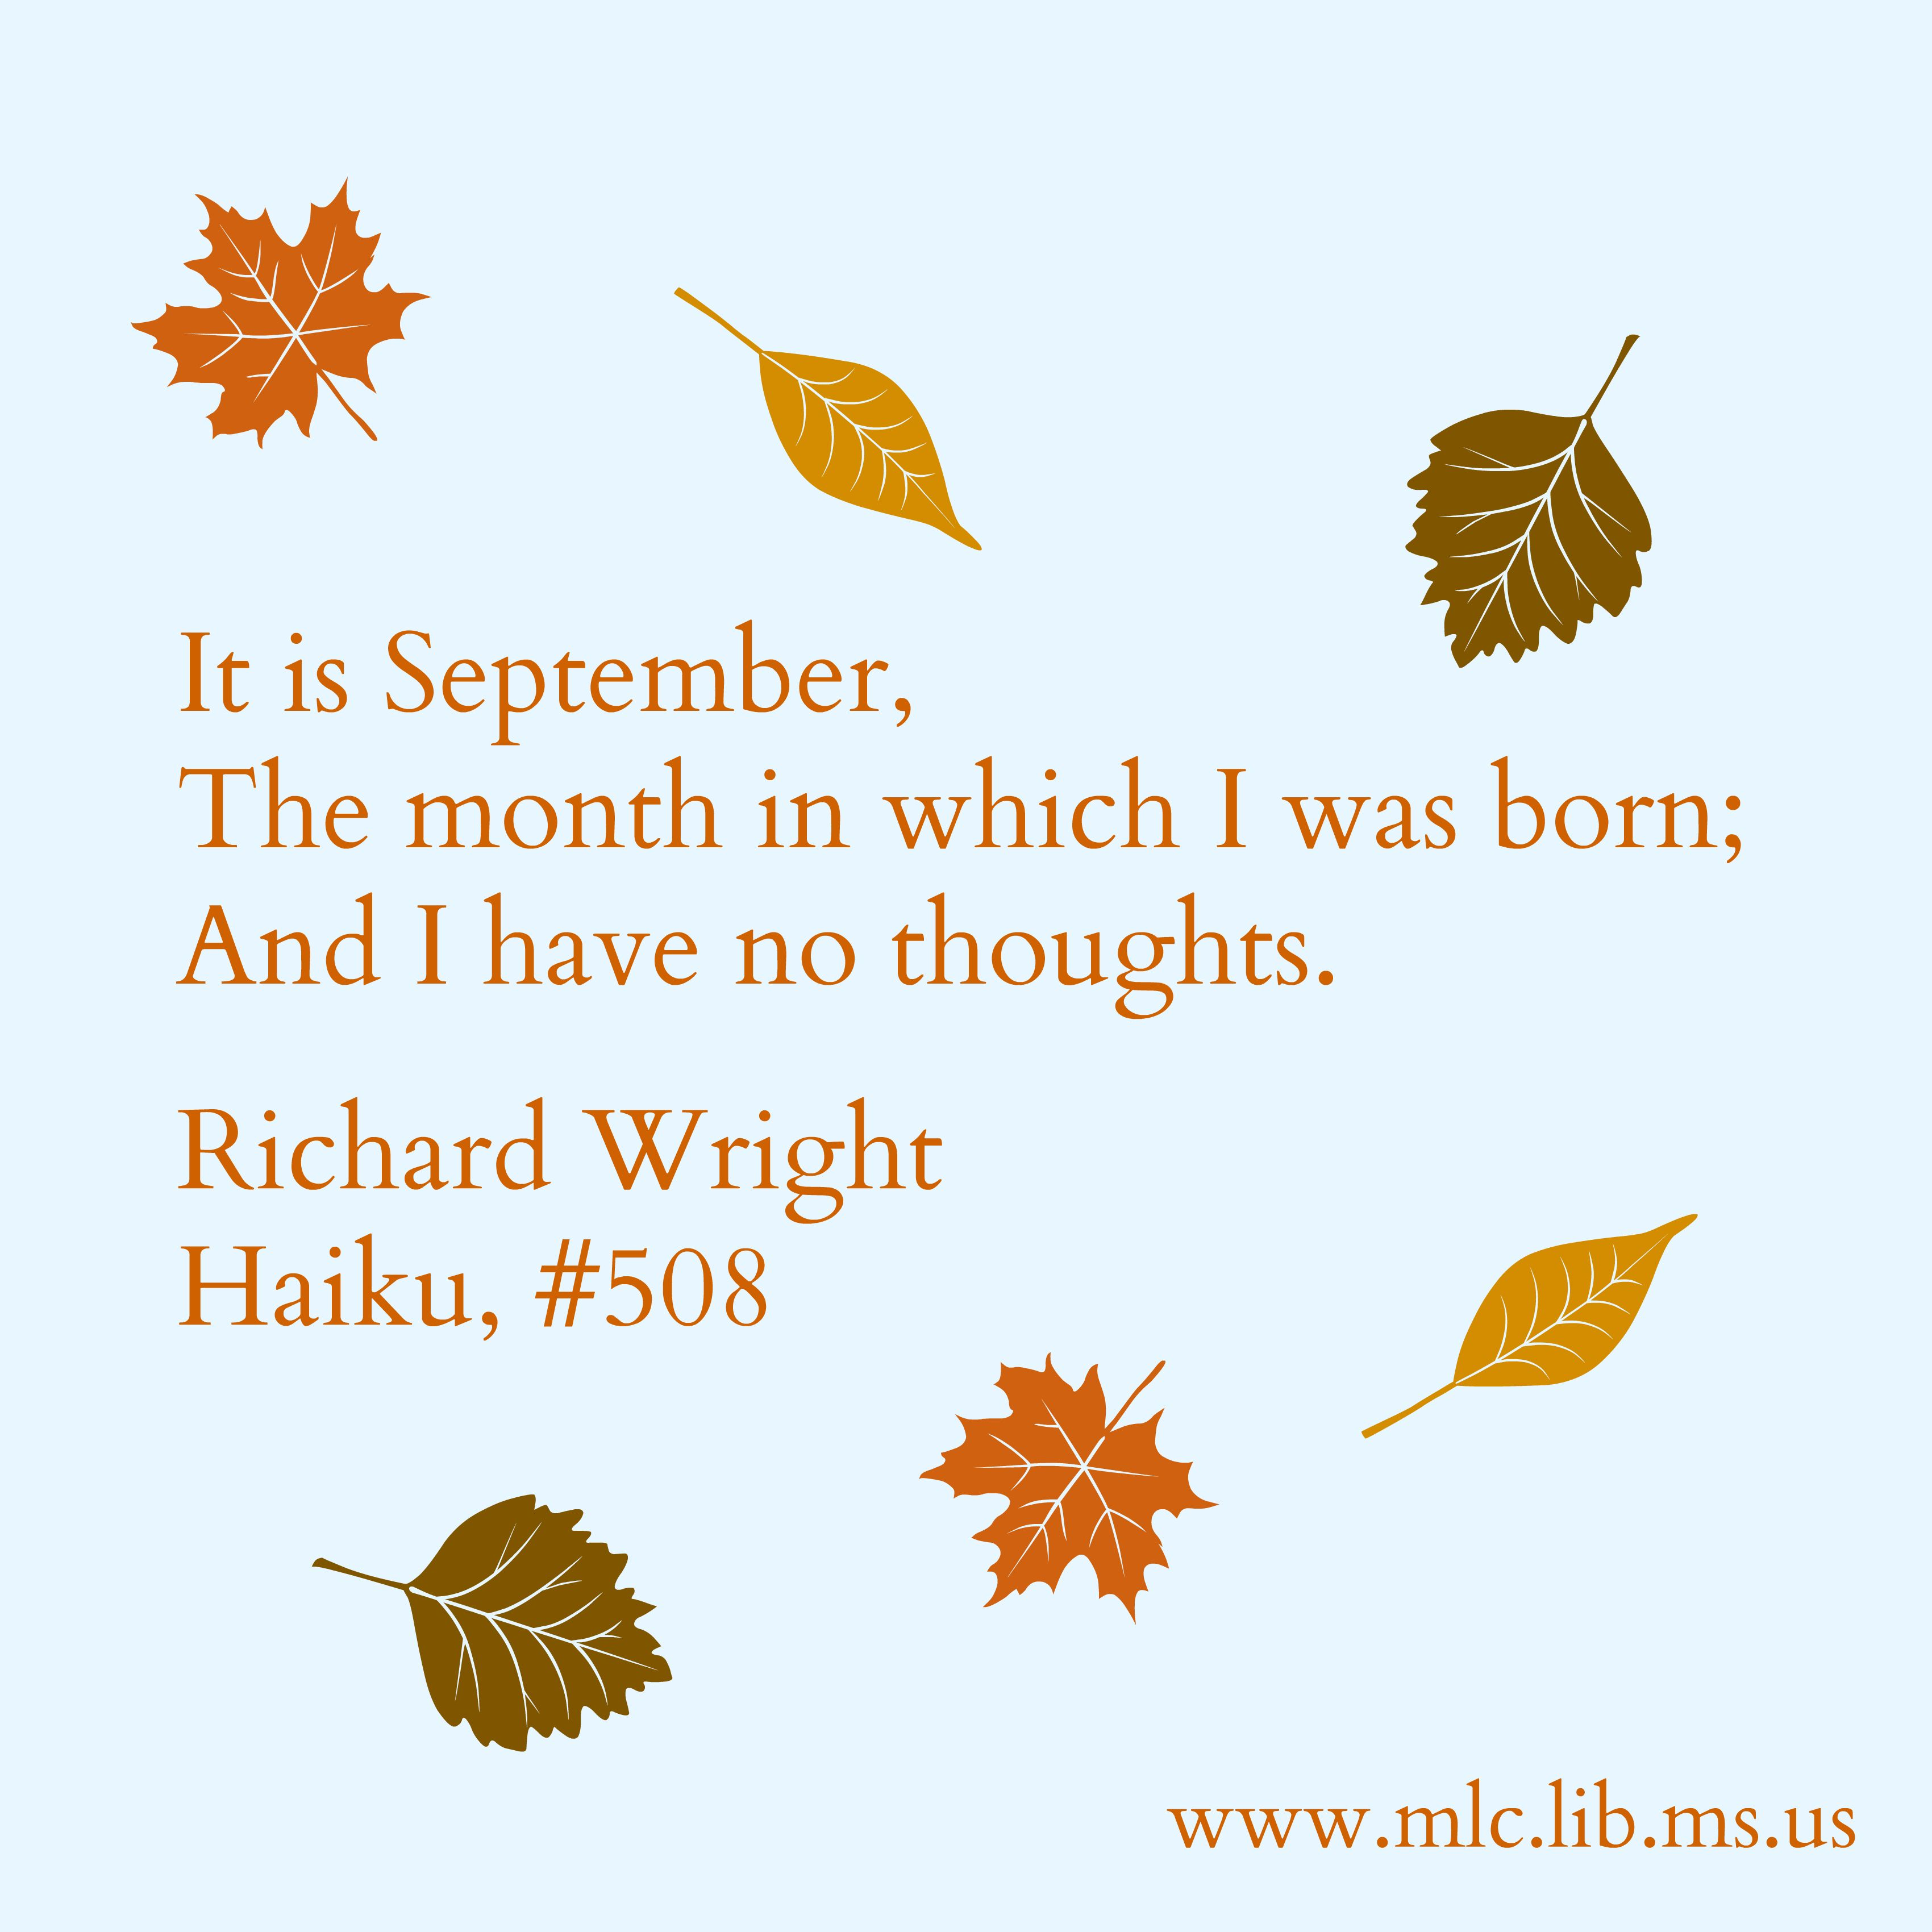 haiku by richard wright an unknown treasure of black poetry richard wright mississippi author and poet was born 4 1908 in roxie